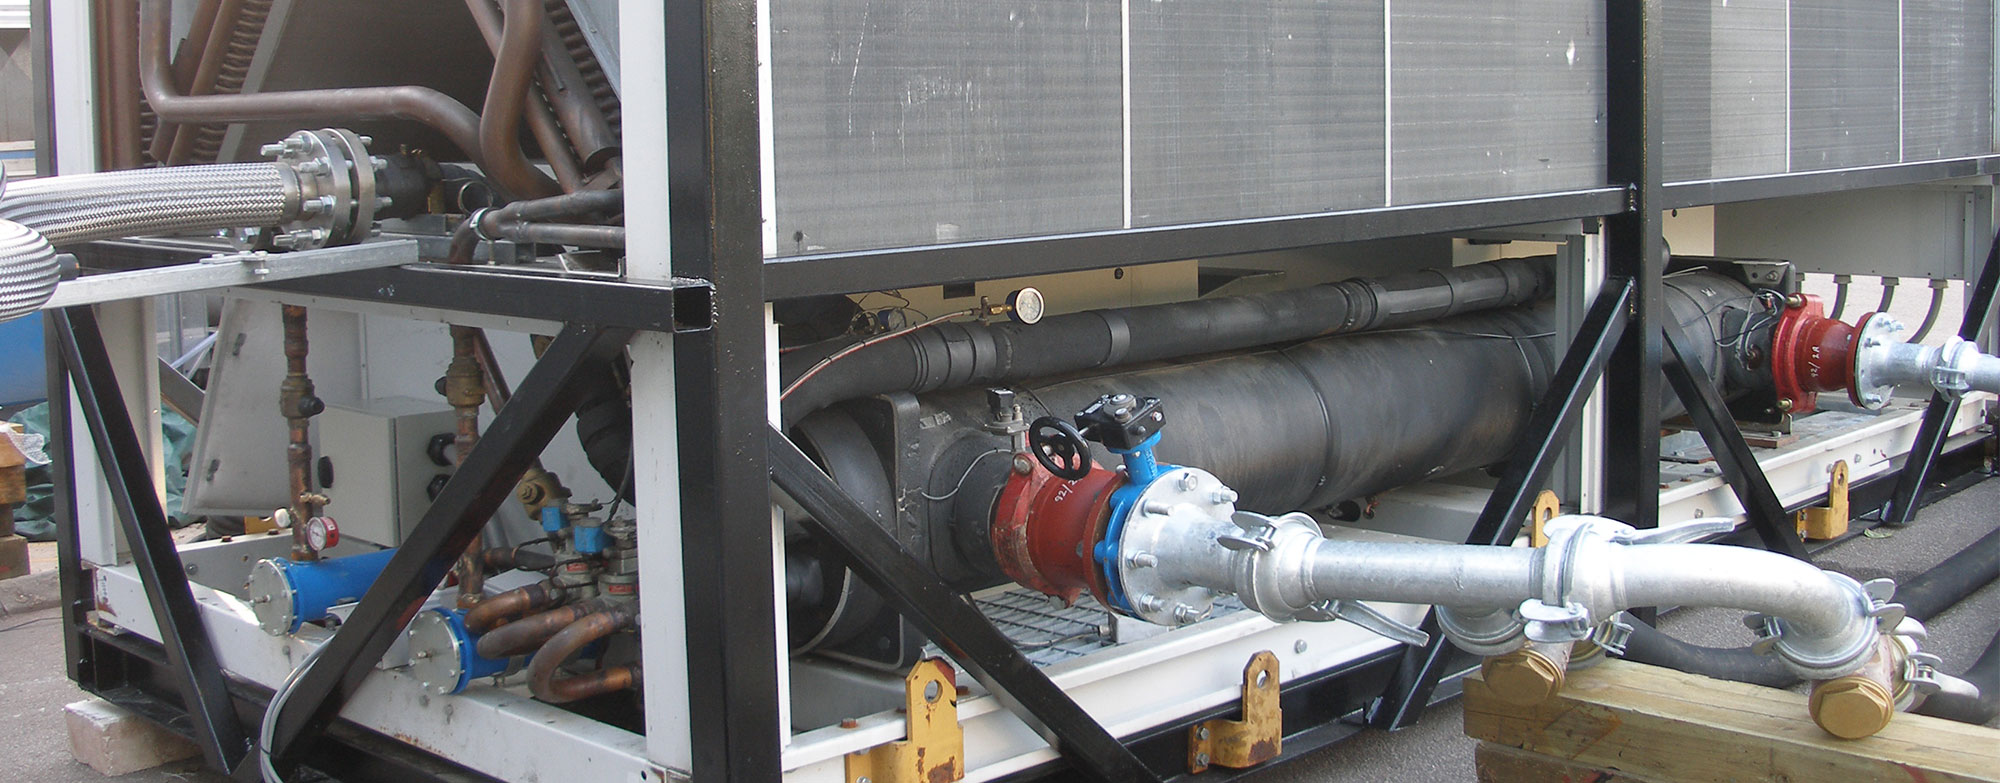 Chilled Water Piping System